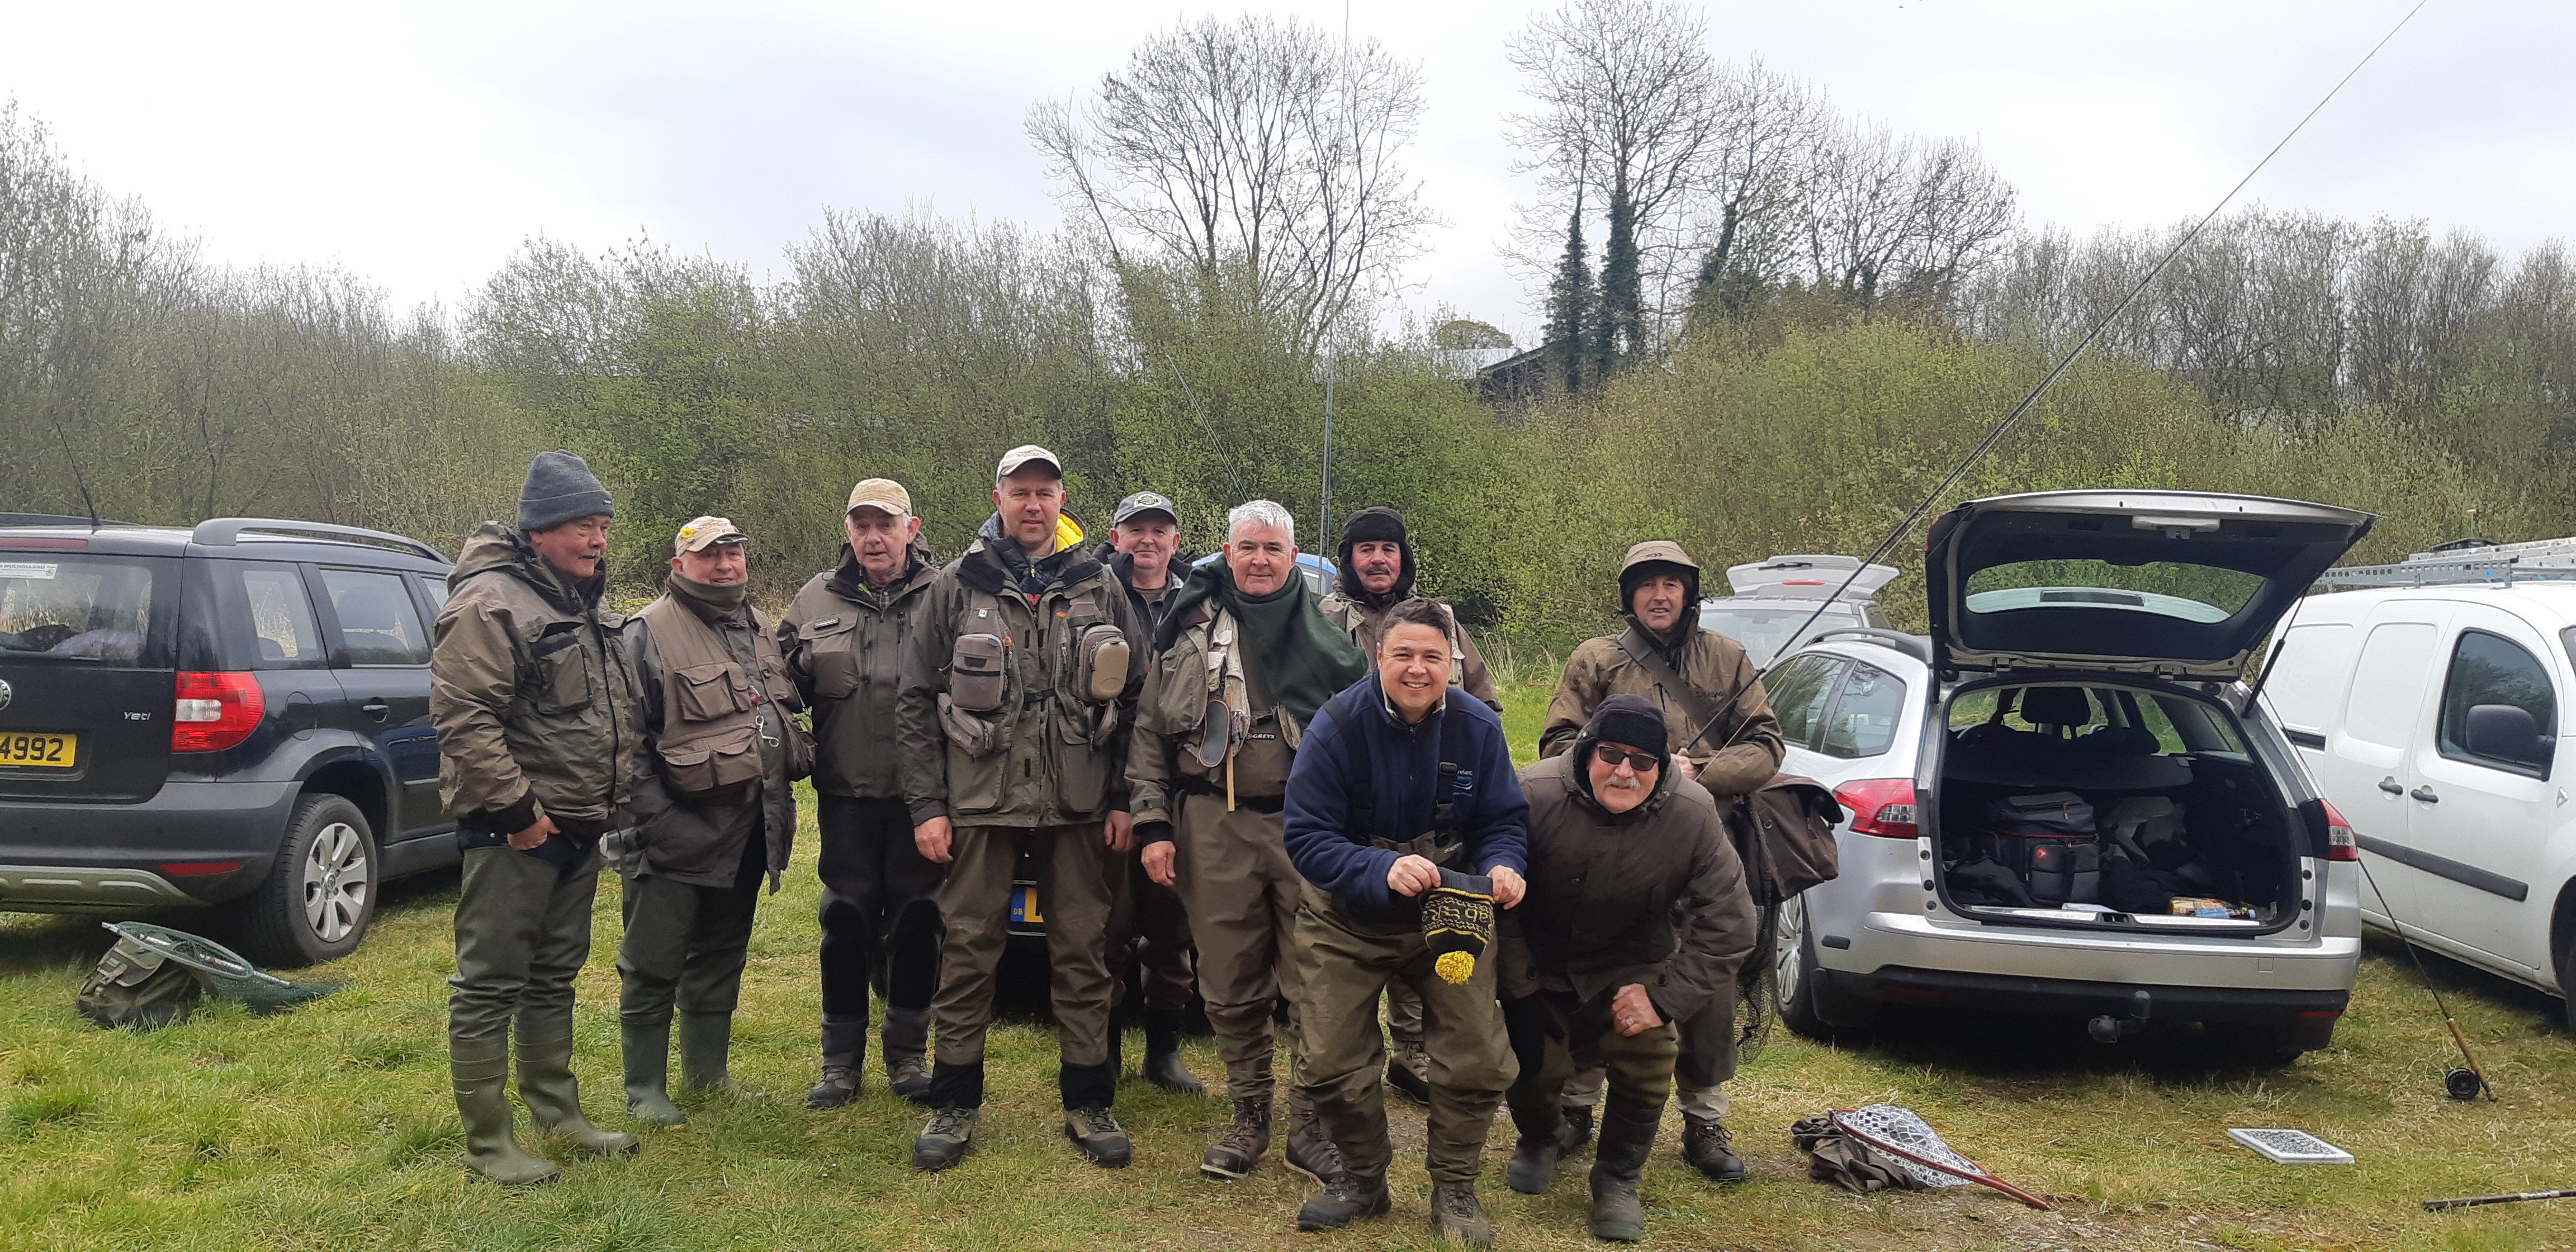 BAC Friendship Cup Lowry's Lake, Armagh on 13 April 2019 - Banbridge Angling Club team